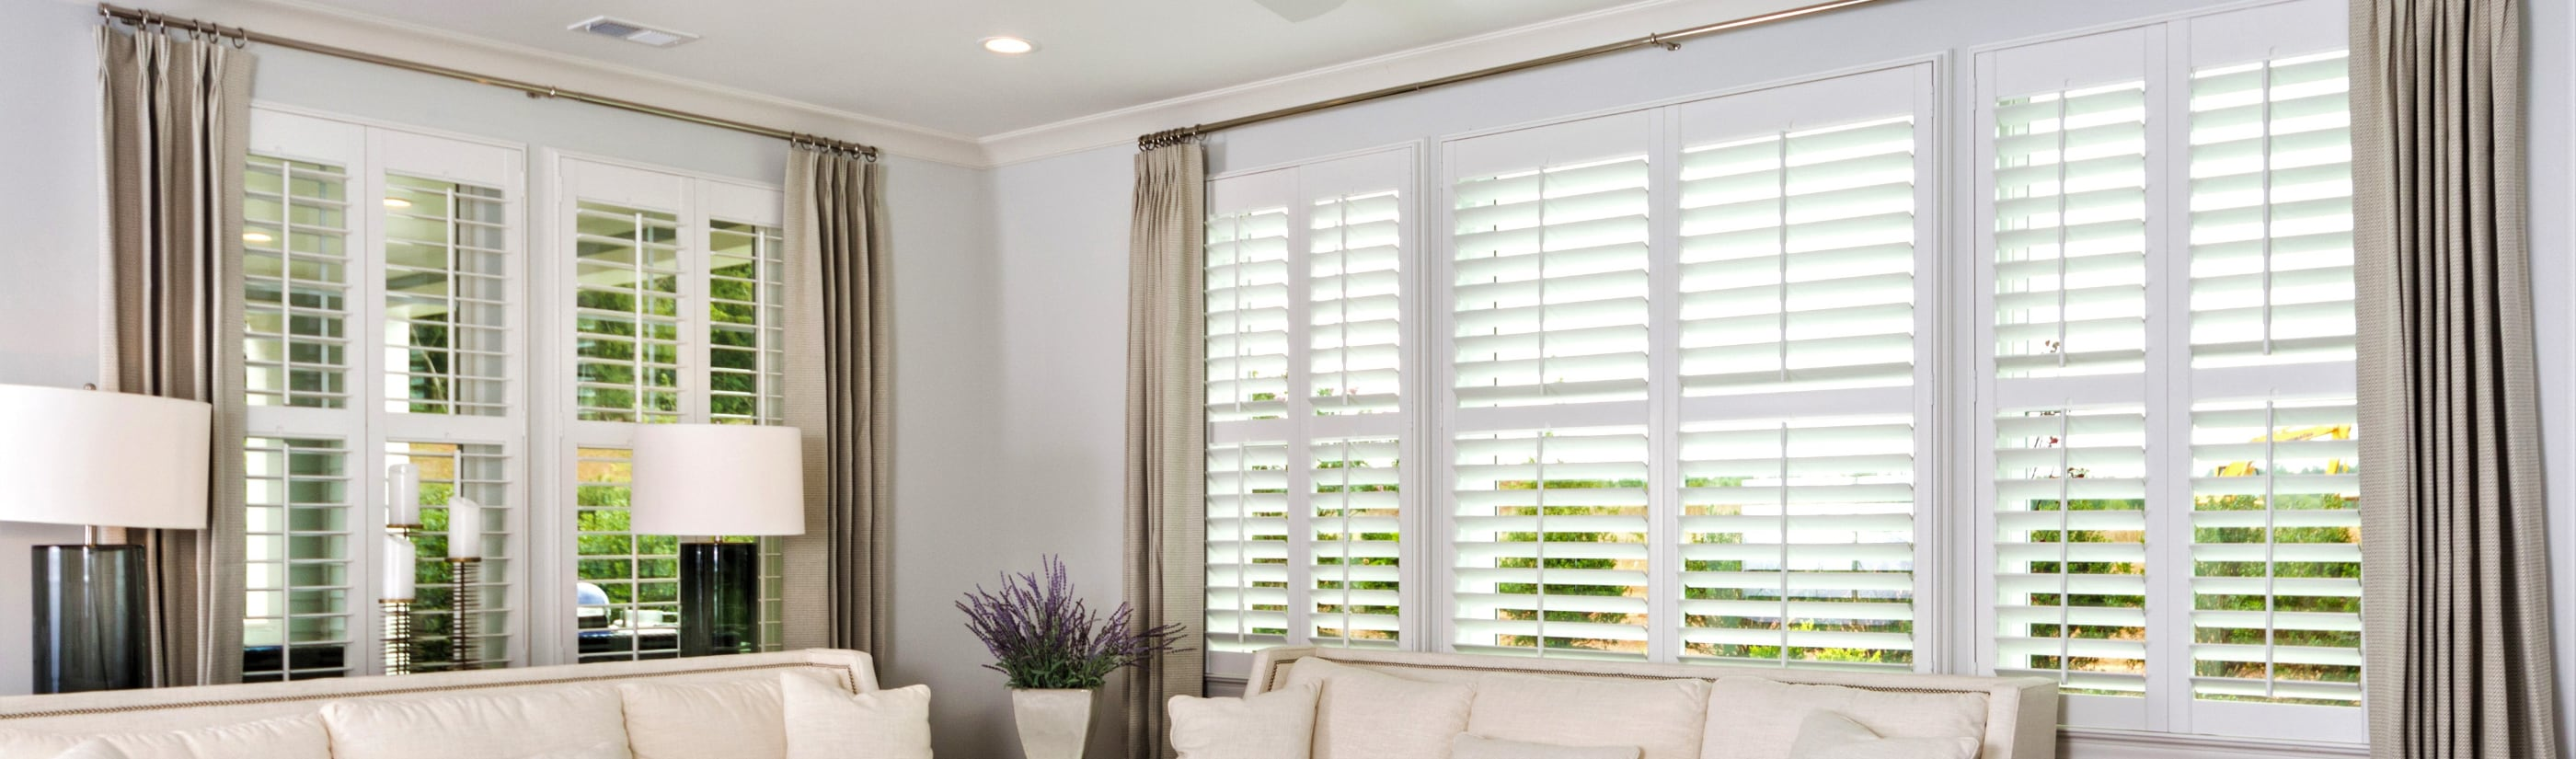 Polywood Shutters Paints In Destin